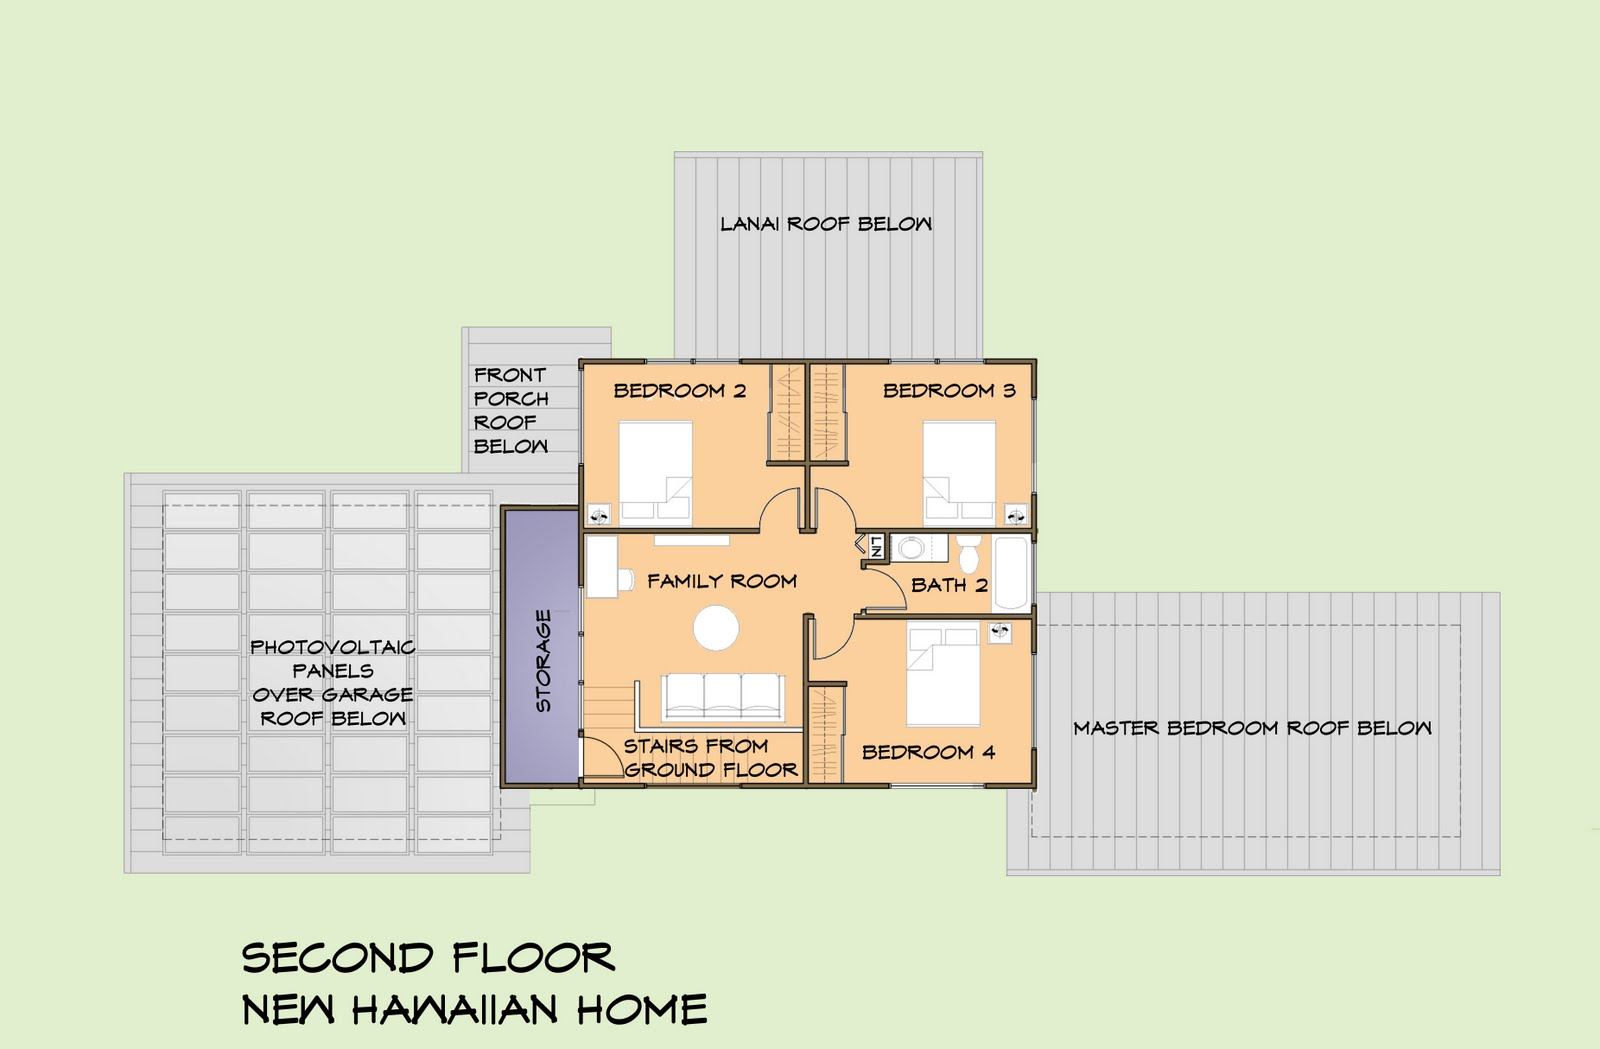 New hawaiian home nhh second floor plan for Home plans hawaii